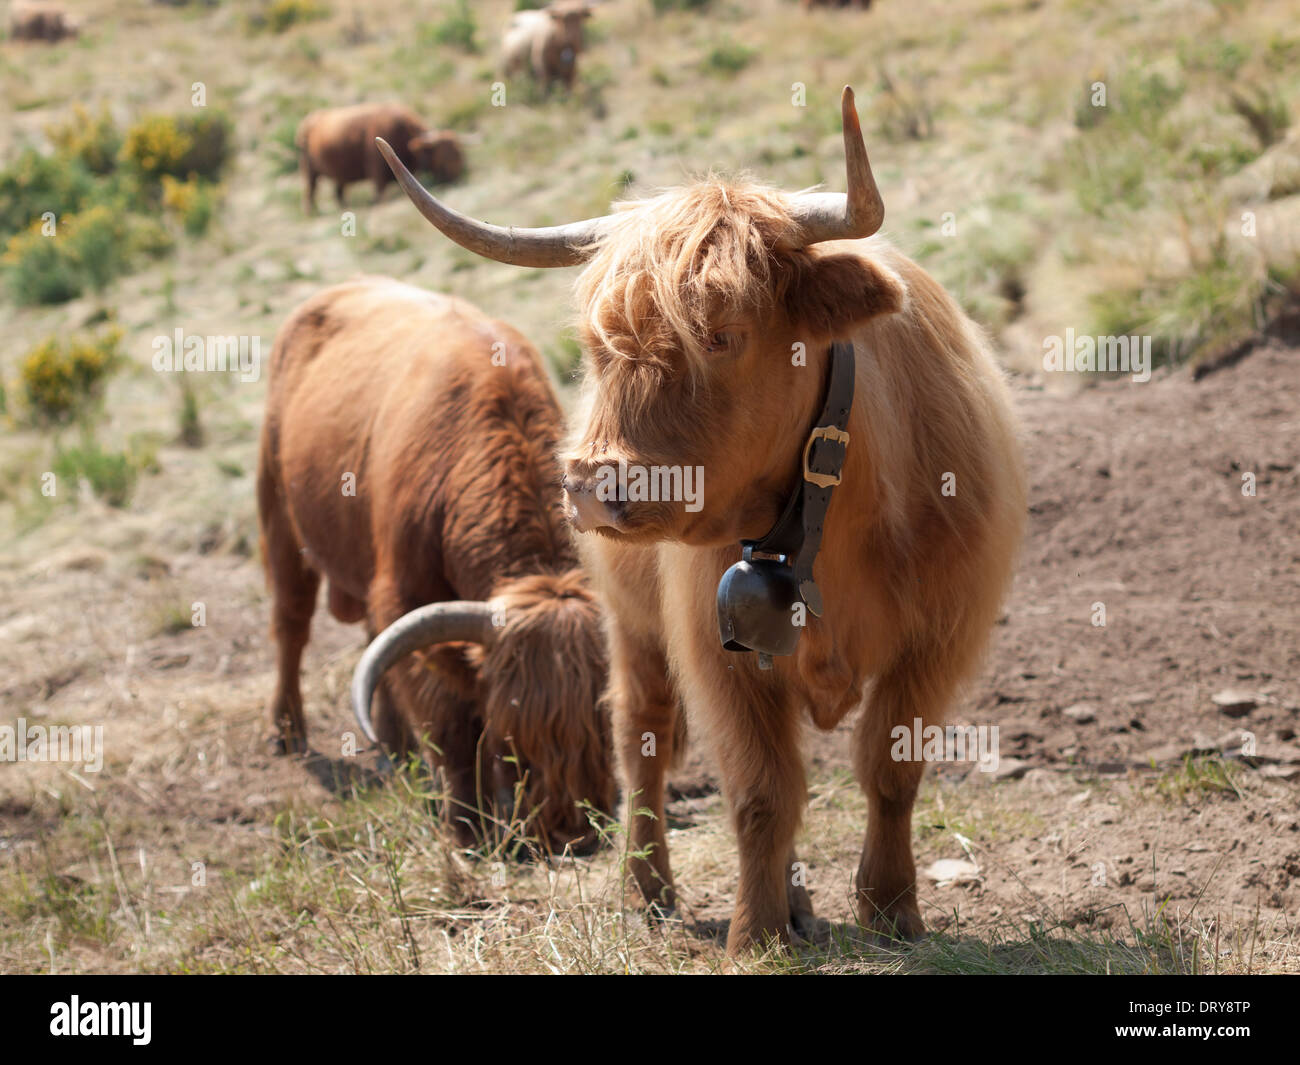 Highland cattle at an alp on Monte Cardada near Locarno, Switzerland. - Stock Image